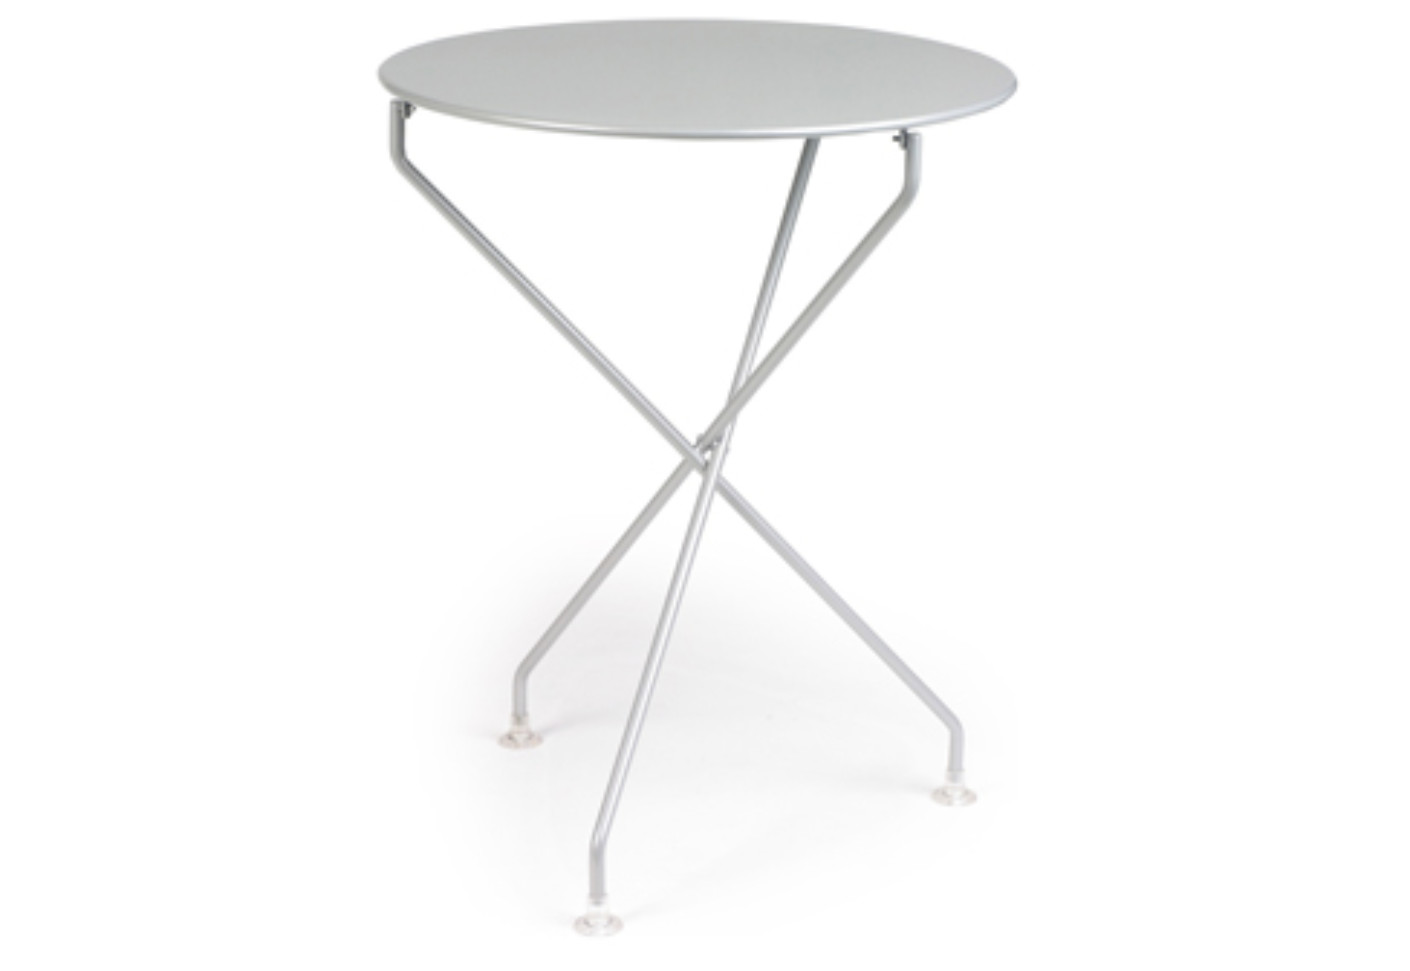 Tertio small folding table by Fermob